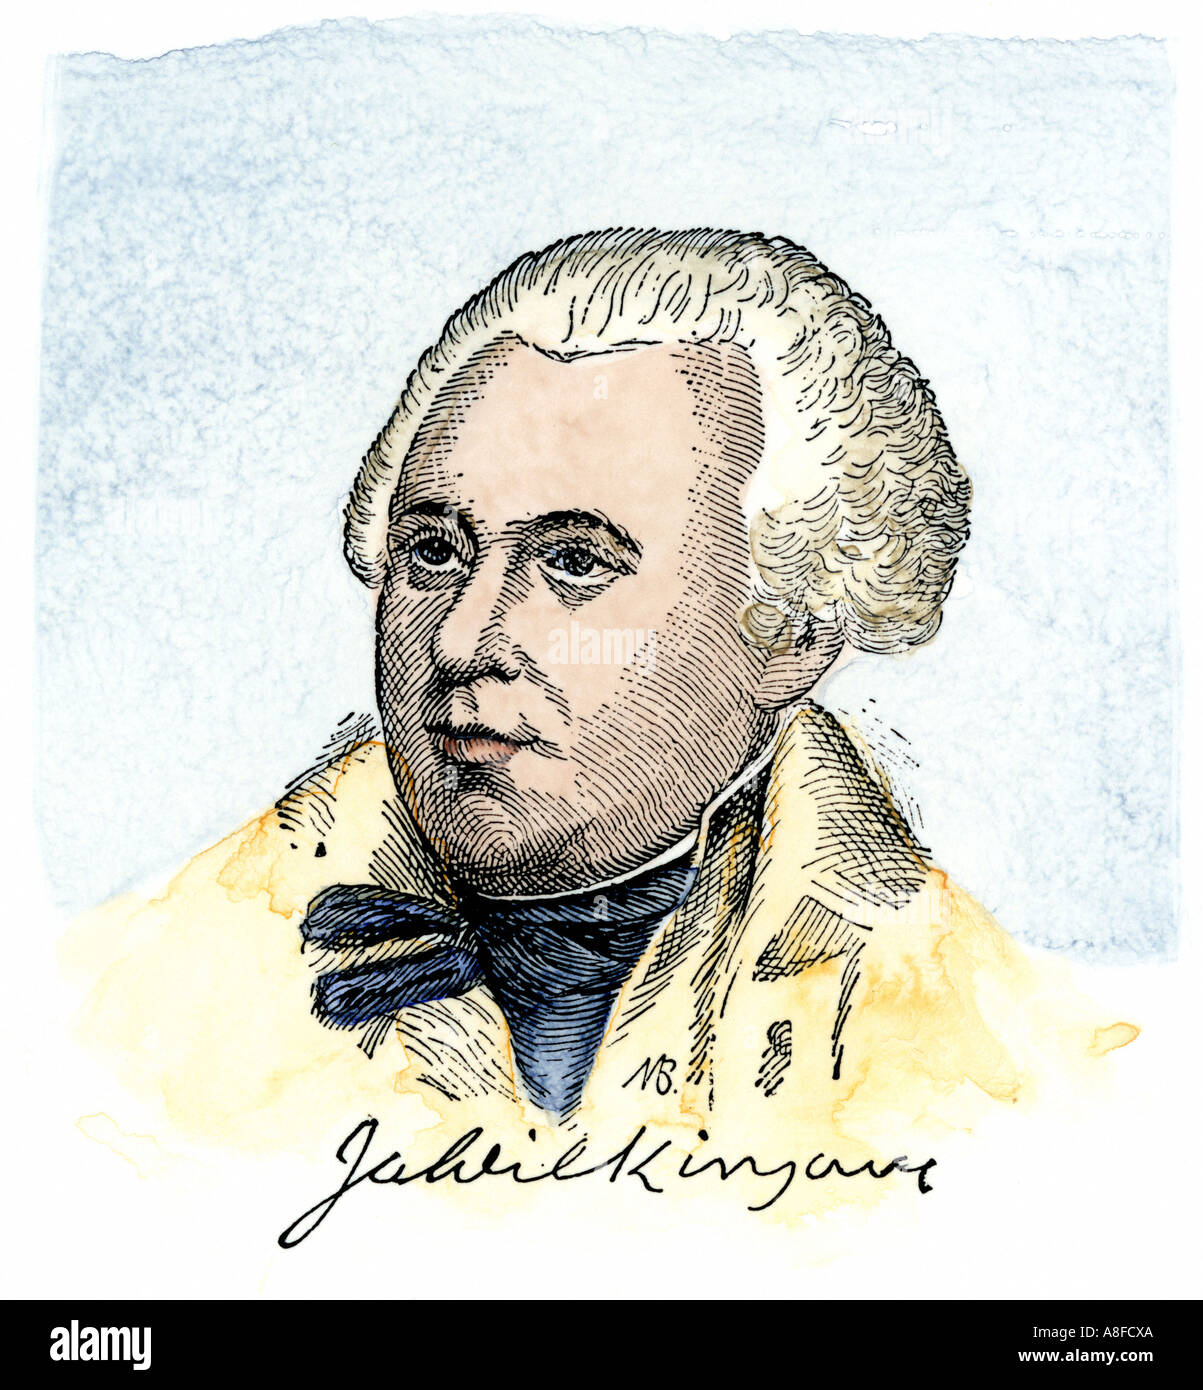 James Wilkinson with his signature. Hand-colored woodcut - Stock Image